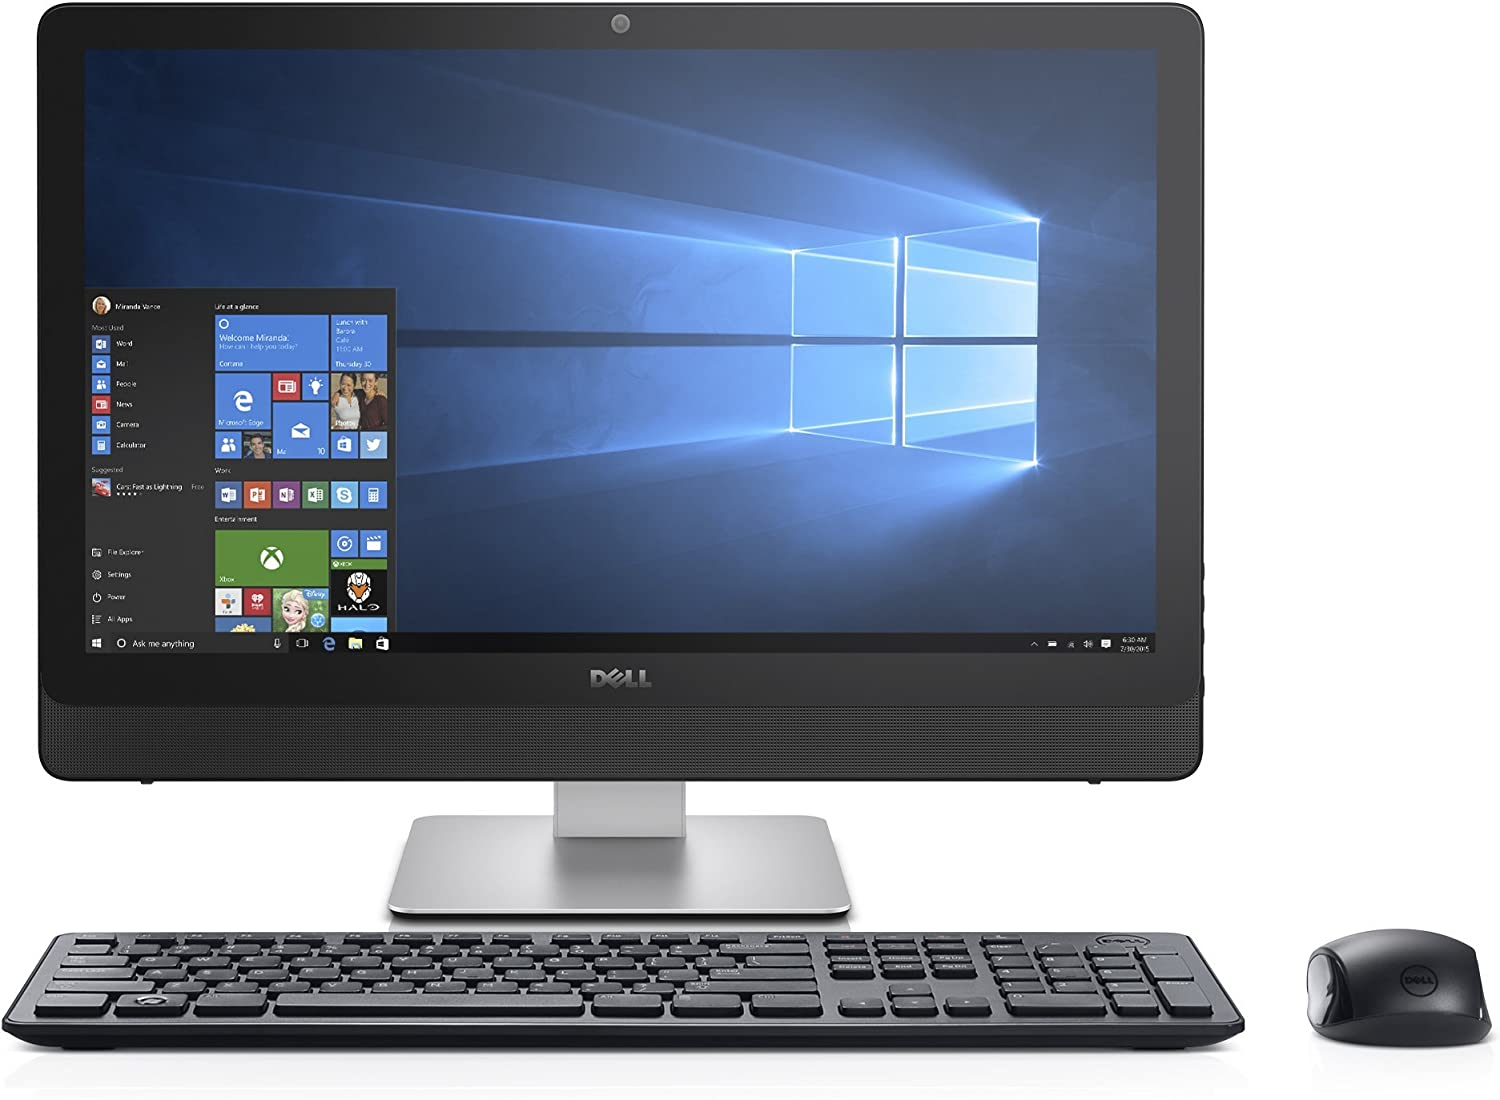 Dell Inspiron 3464 FHD 24in Touch Screen All in One PC (Intel Core i3-7100U, 8GB Ram, 1TB HDD, Camera, HDMI, WiFi, DVD-RW) Windows 10(Renewed)